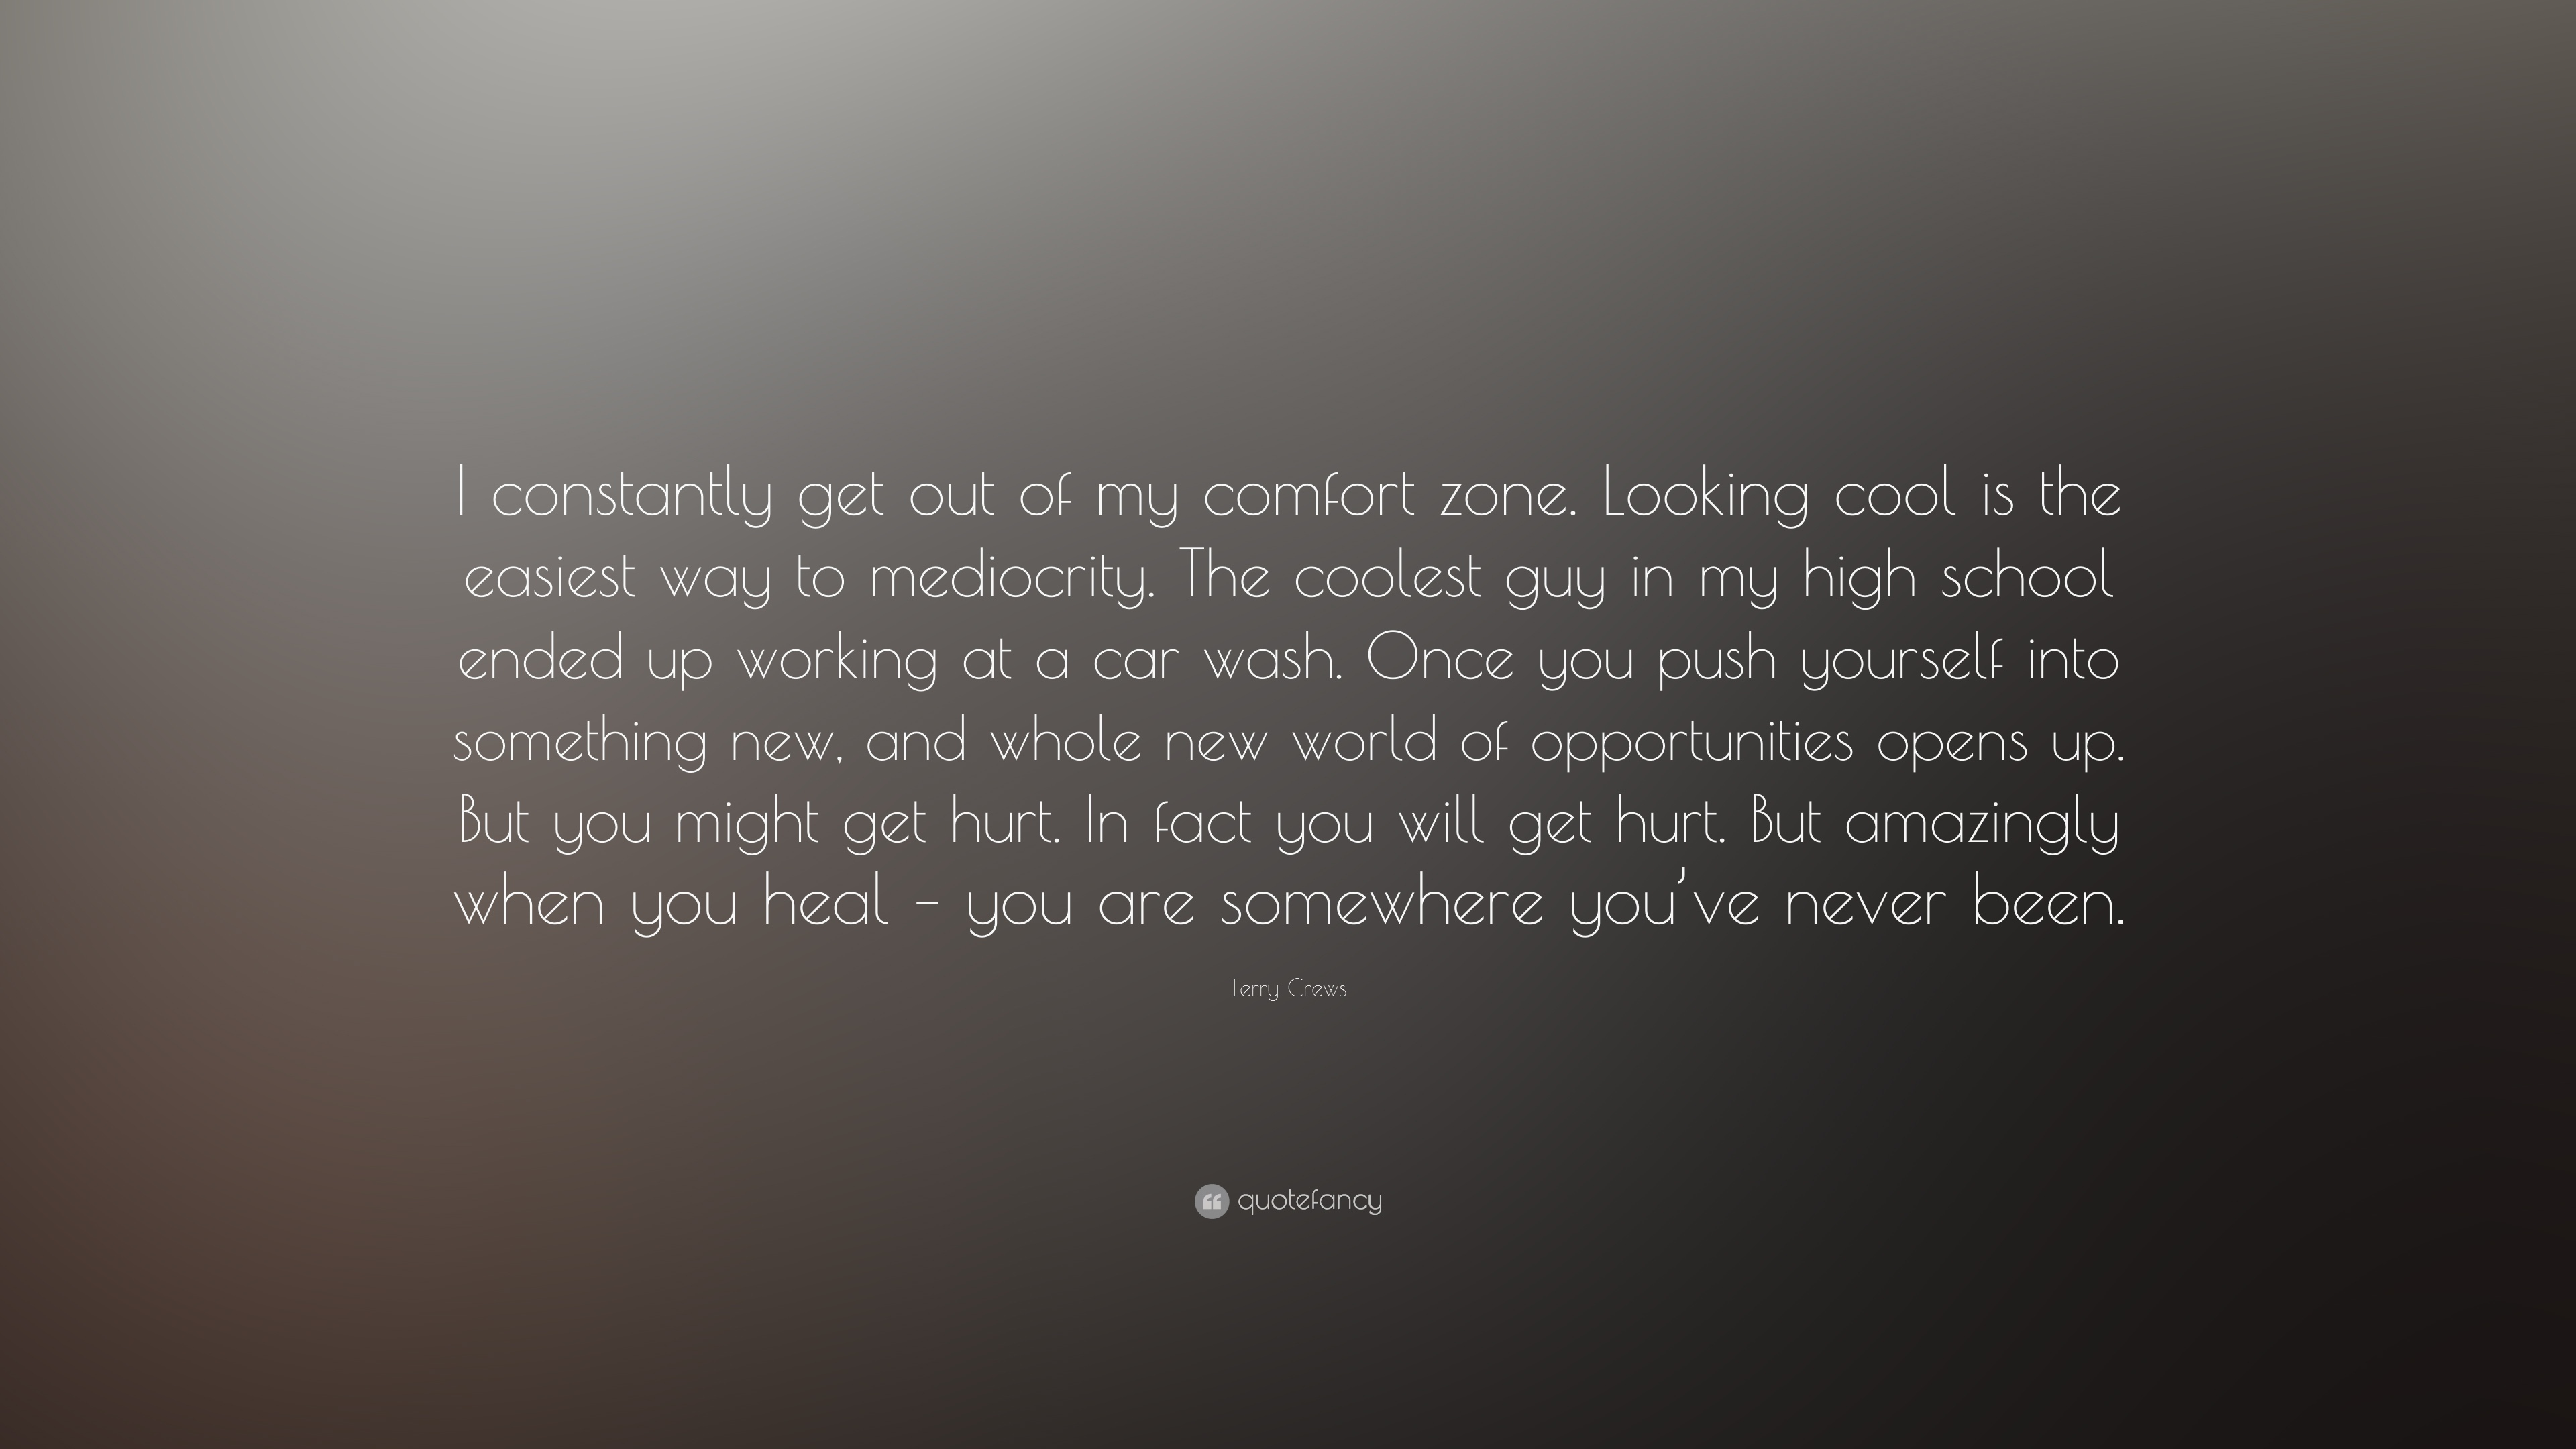 Terry Crews Quote - Emily Dickinson Quotes - HD Wallpaper